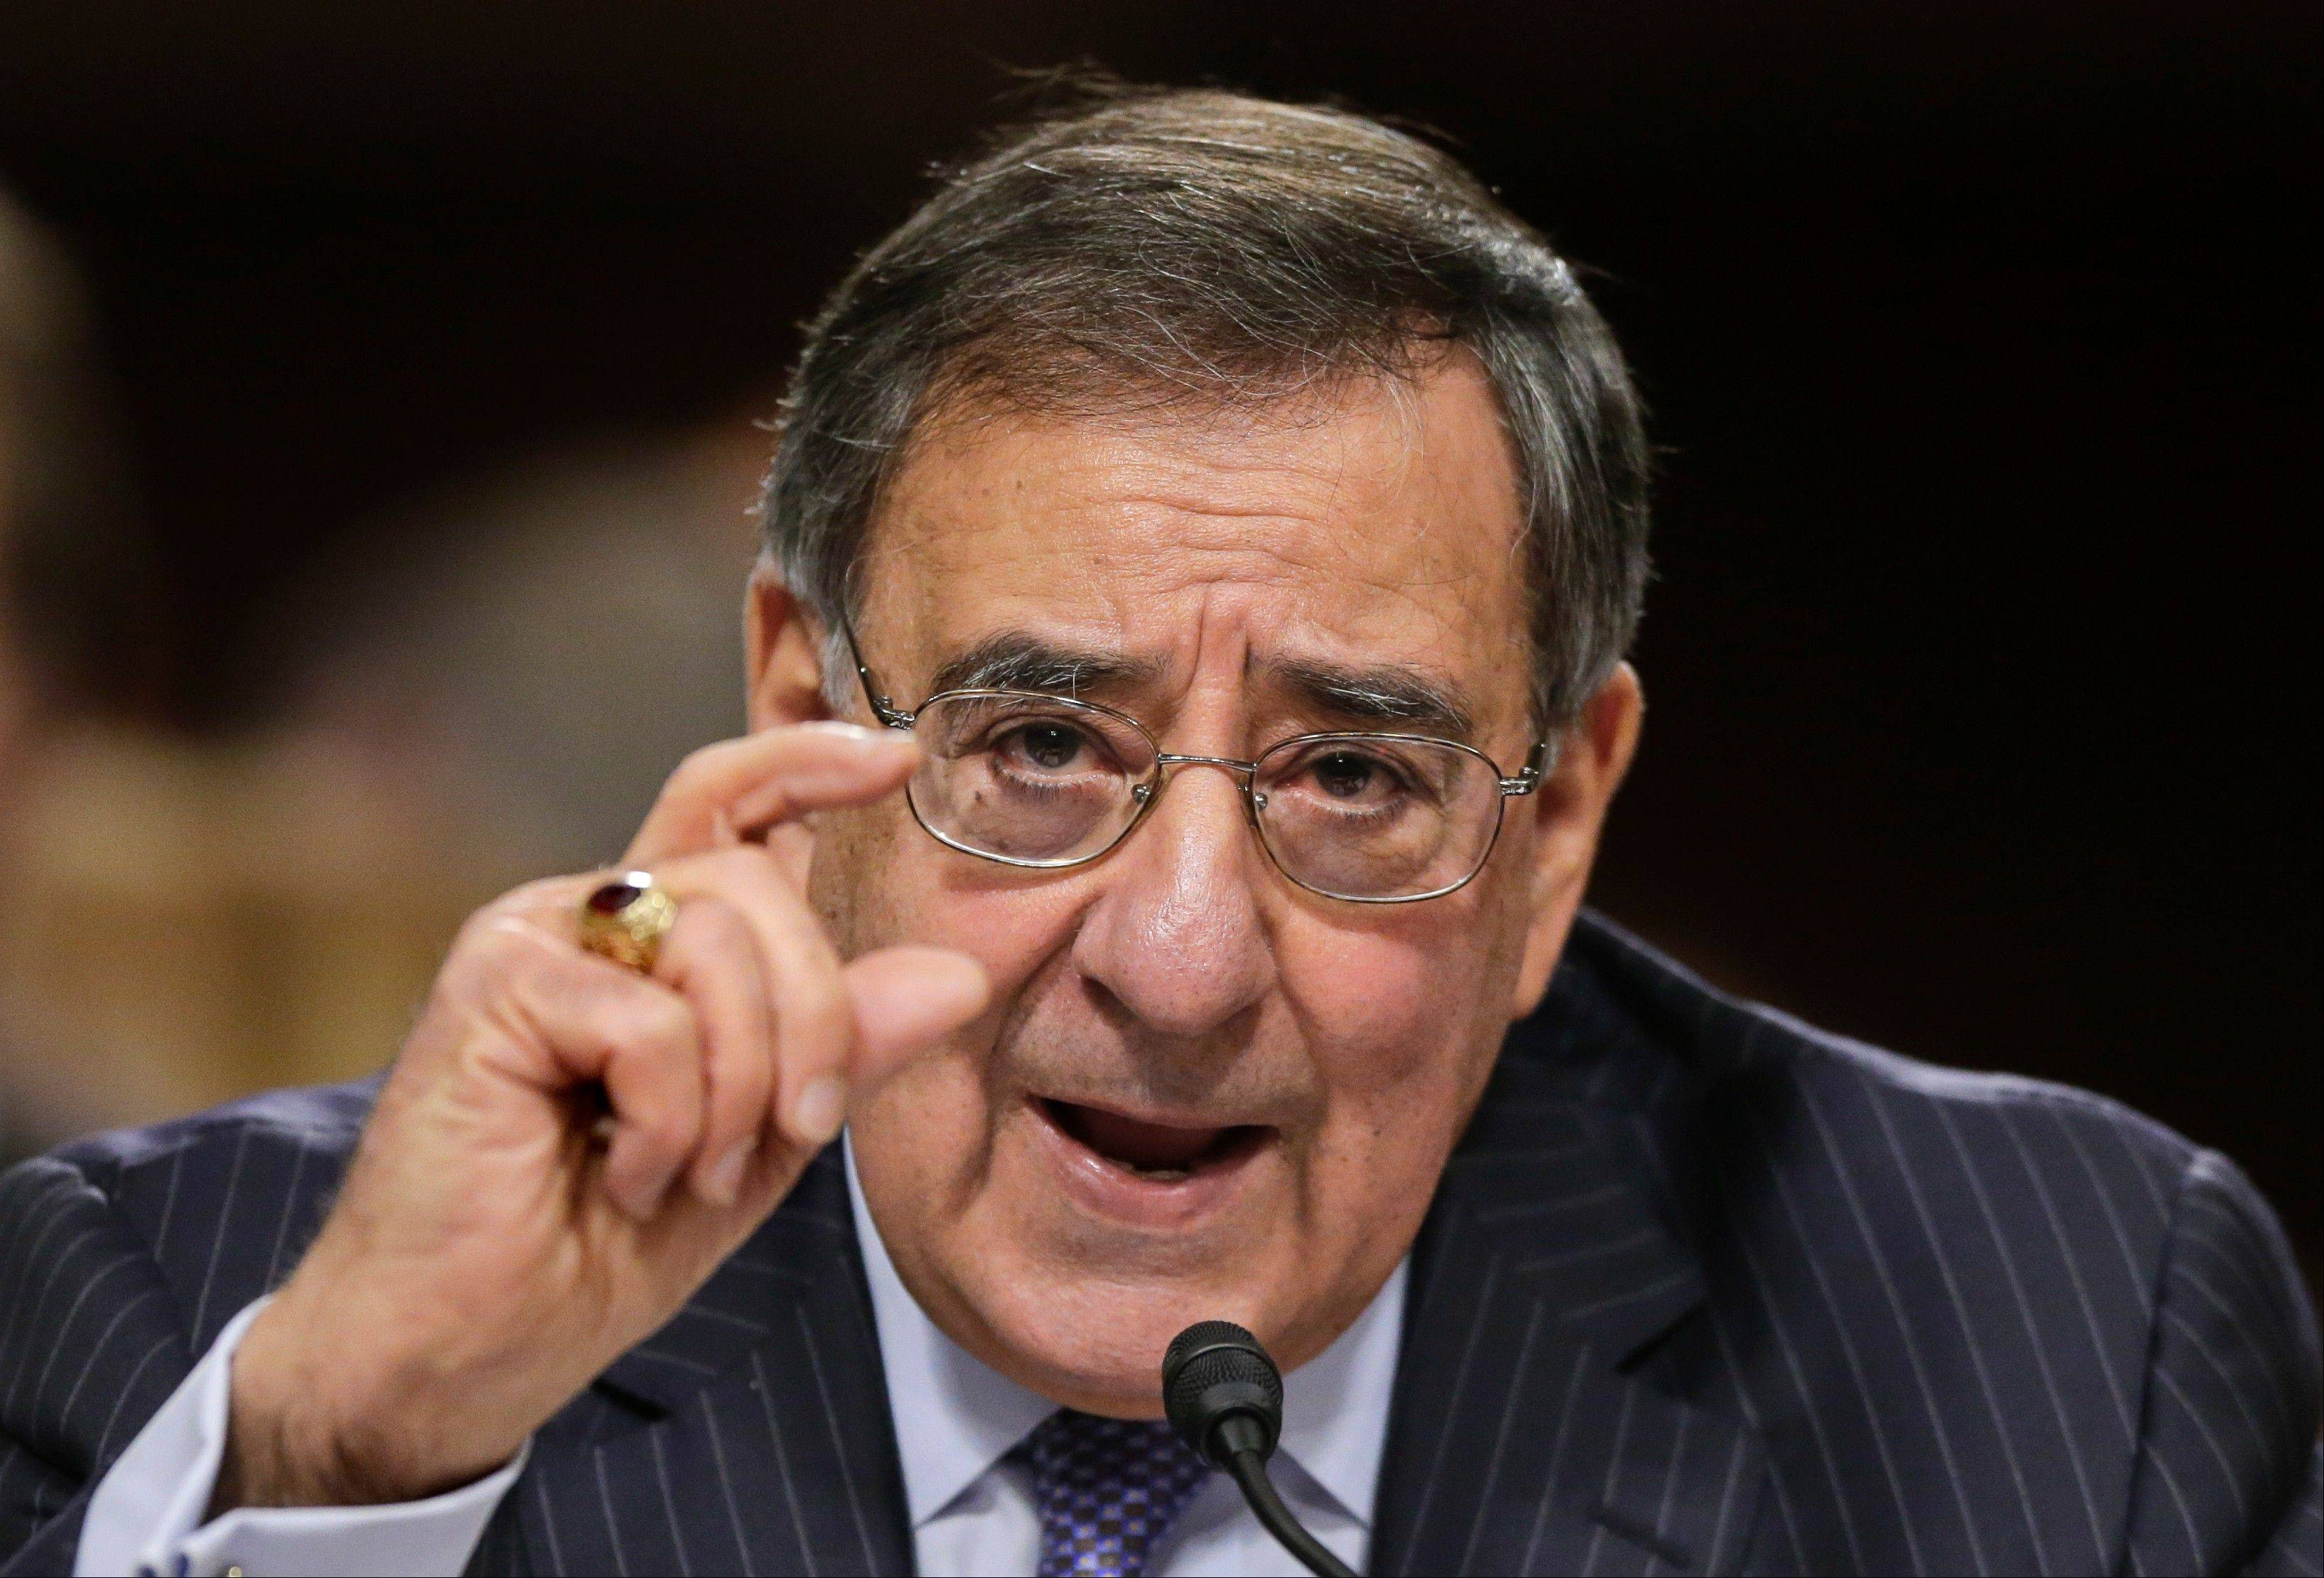 Outgoing Defense Secretary Leon Panetta testifies on Capitol Hill Thursday before the Senate Armed Services Committee about the Pentagon�s role in responding to the attack last year on the U.S. consulate in Benghazi, Libya, where the ambassador and three other Americans were killed.